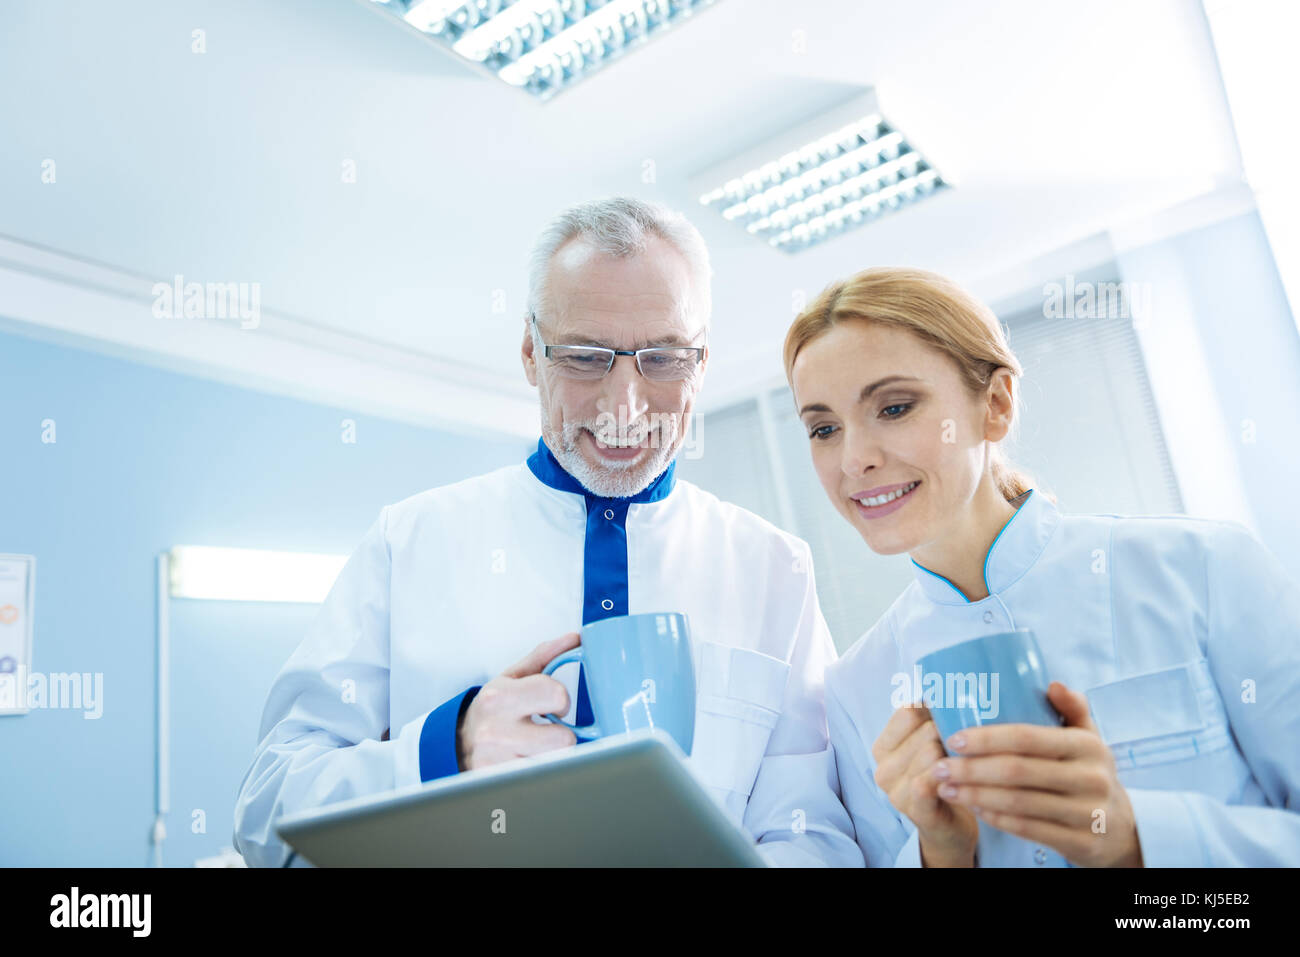 Inspired scientists in uniforms with cups Stock Photo